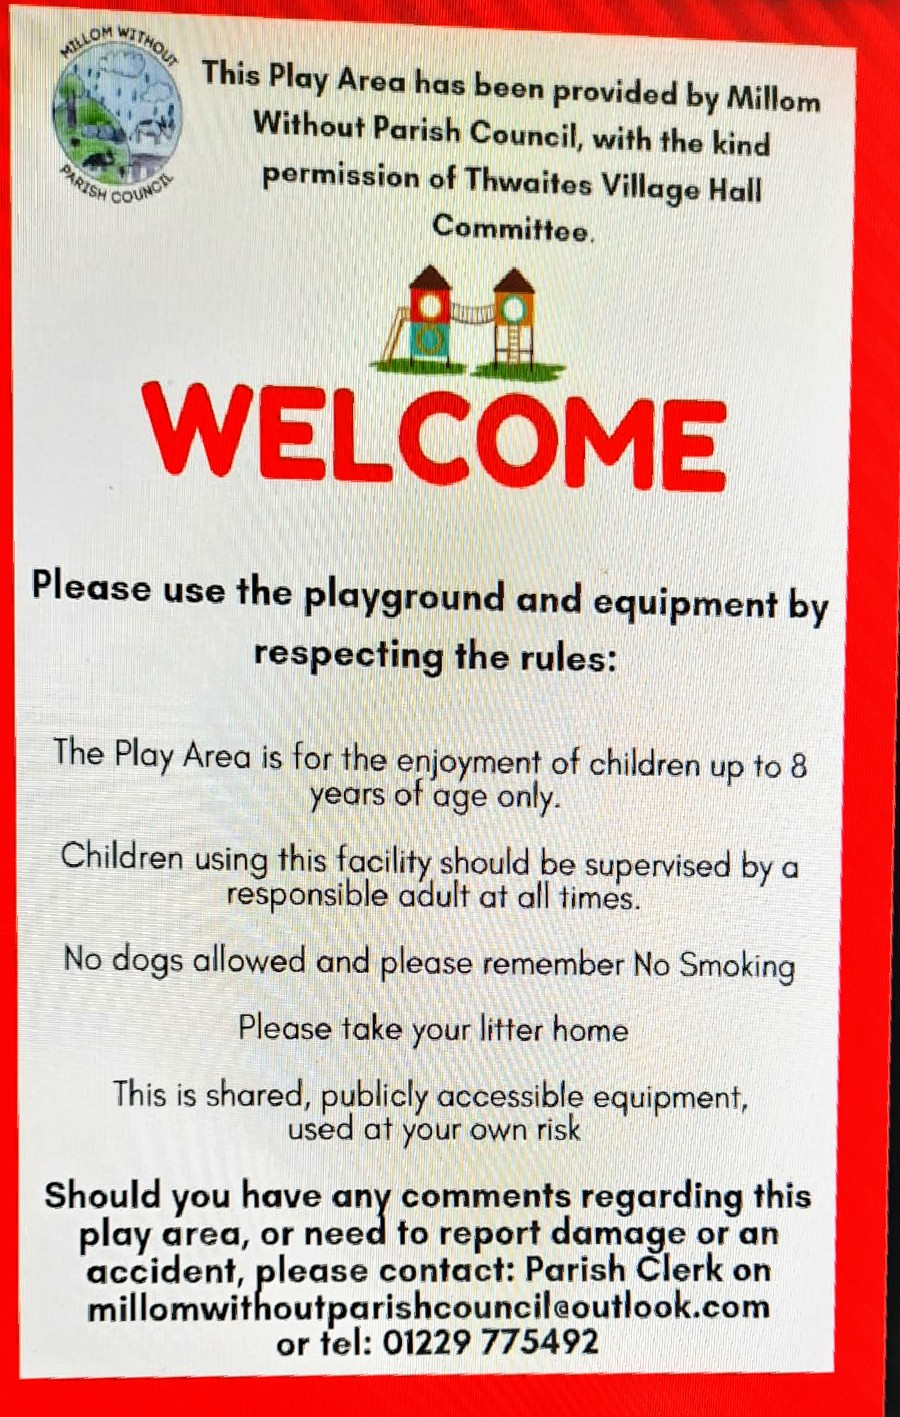 Notice of rules for the play area